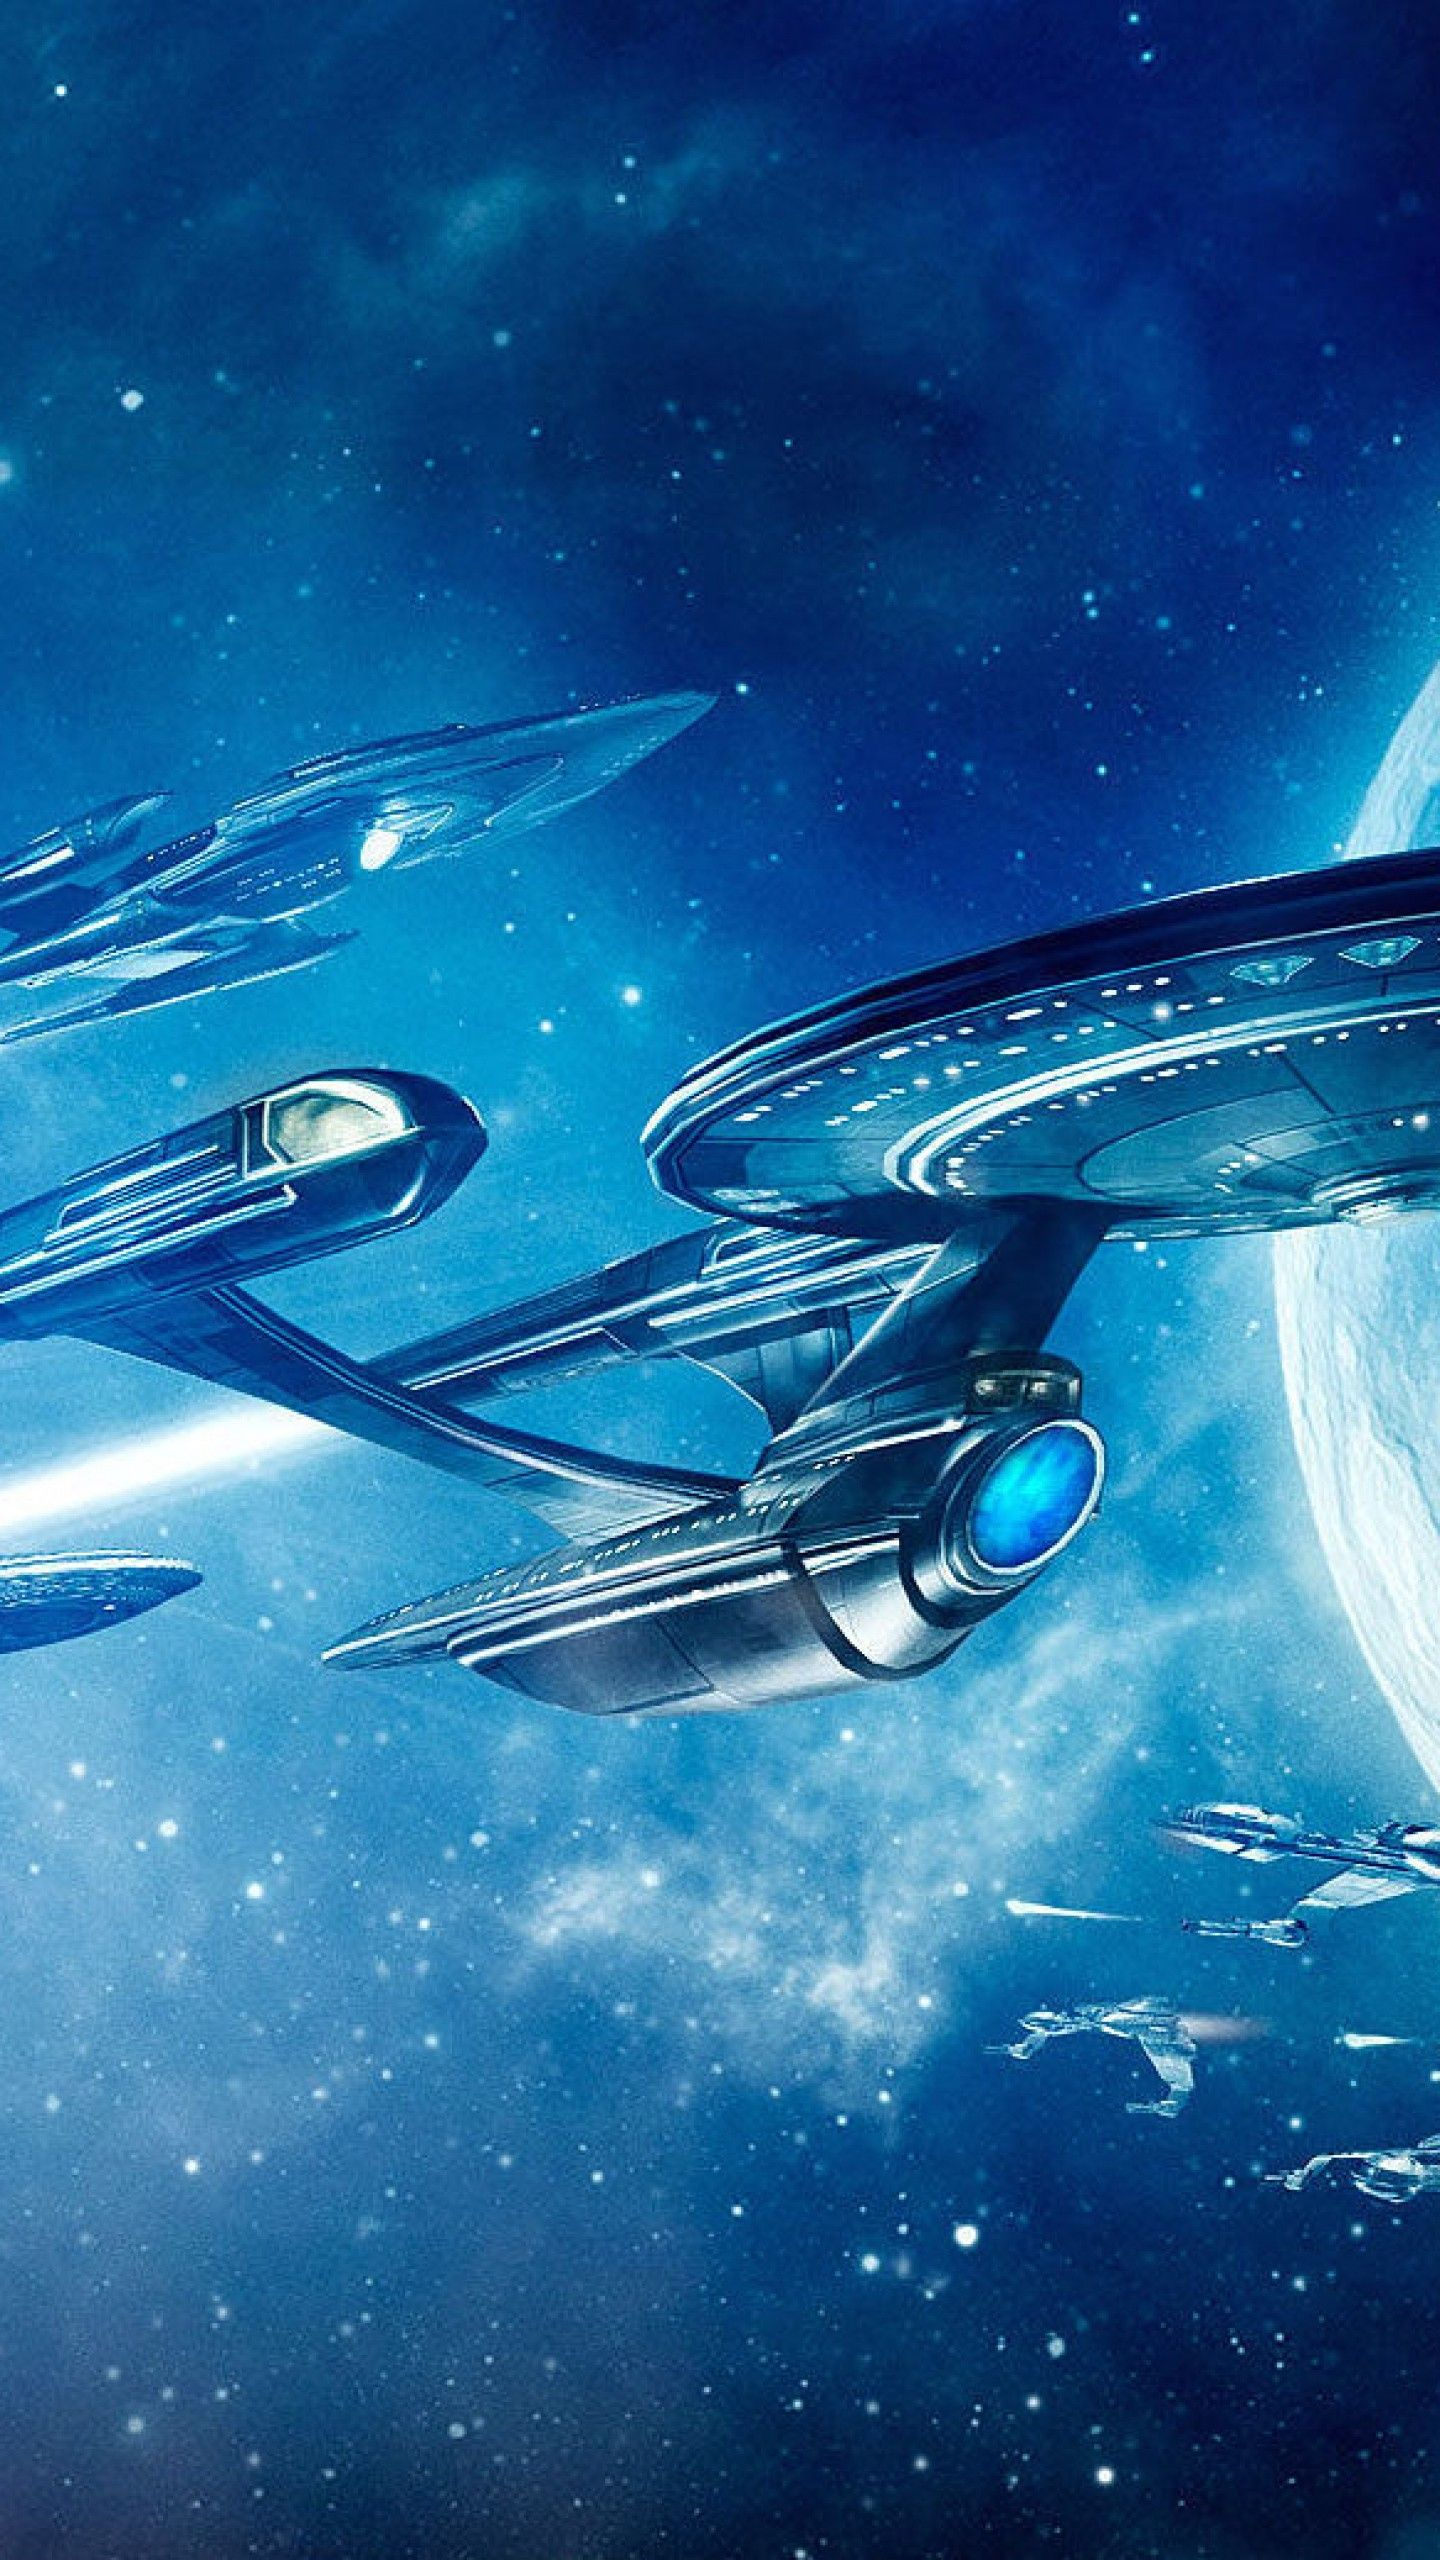 Star Trek Wallpaper Android (71+ images) Star trek